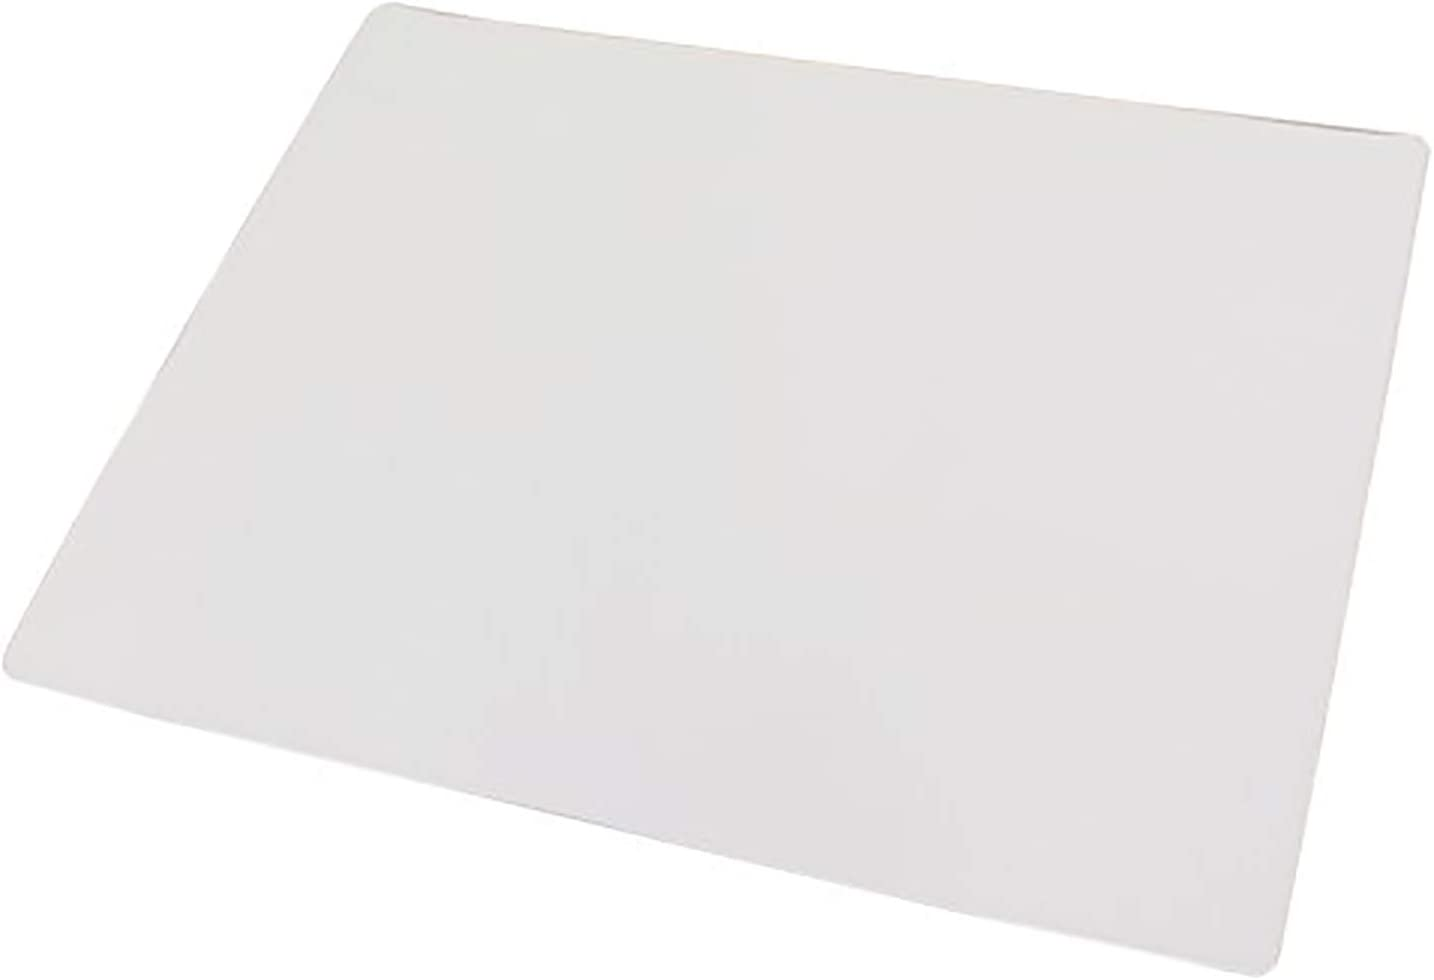 """Food Service Grade Heavy Gauge Flexible Cutting Board Mat, Clear BPA Free 18"""" x 24"""" Made in the USA by Chop Chop"""